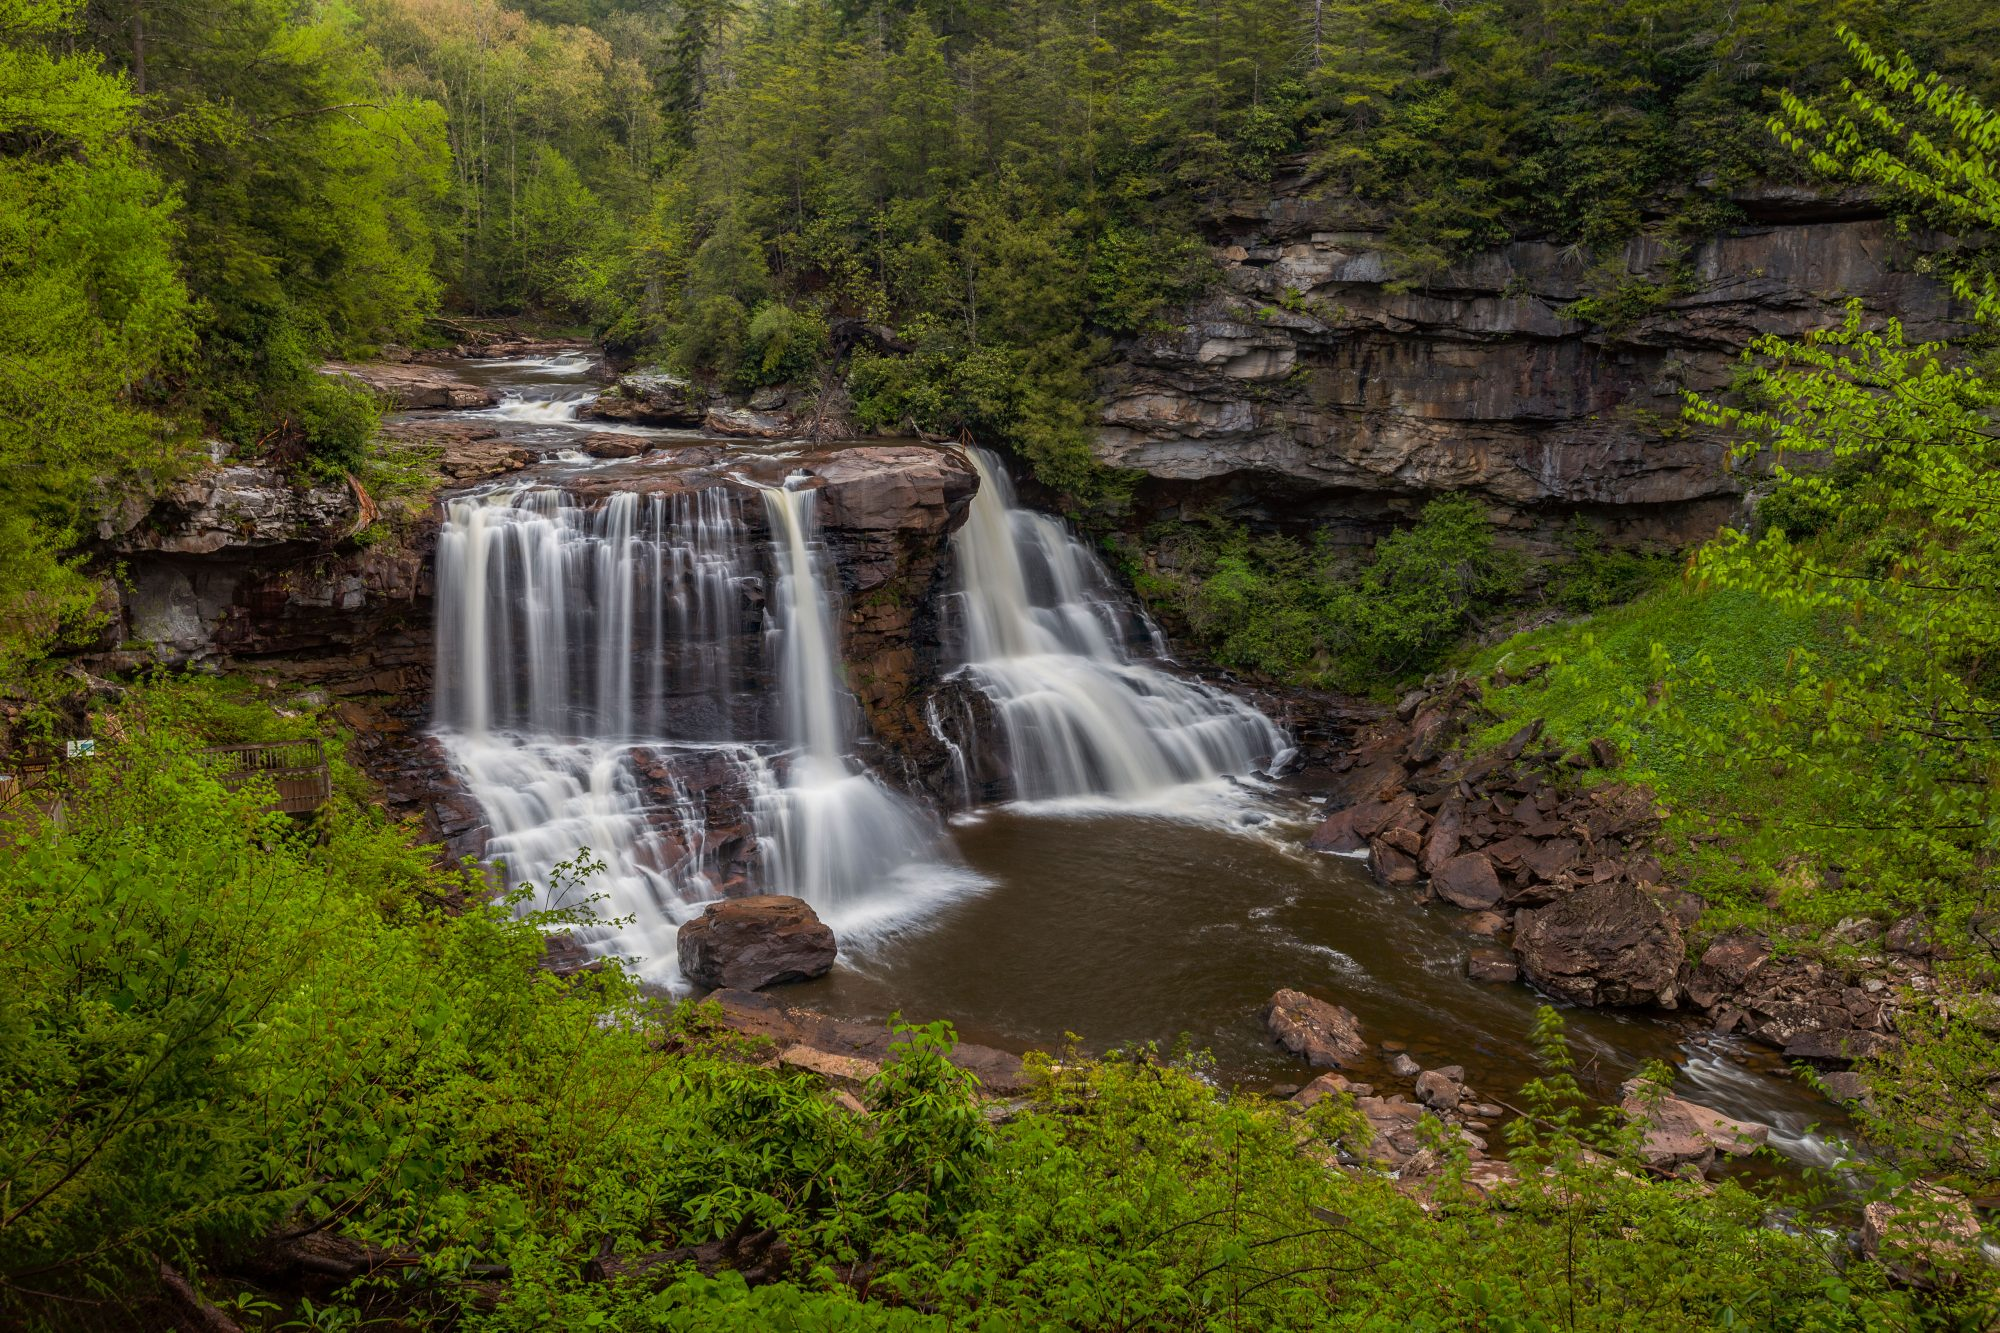 Blackwater Falls State Park in Davis, WV